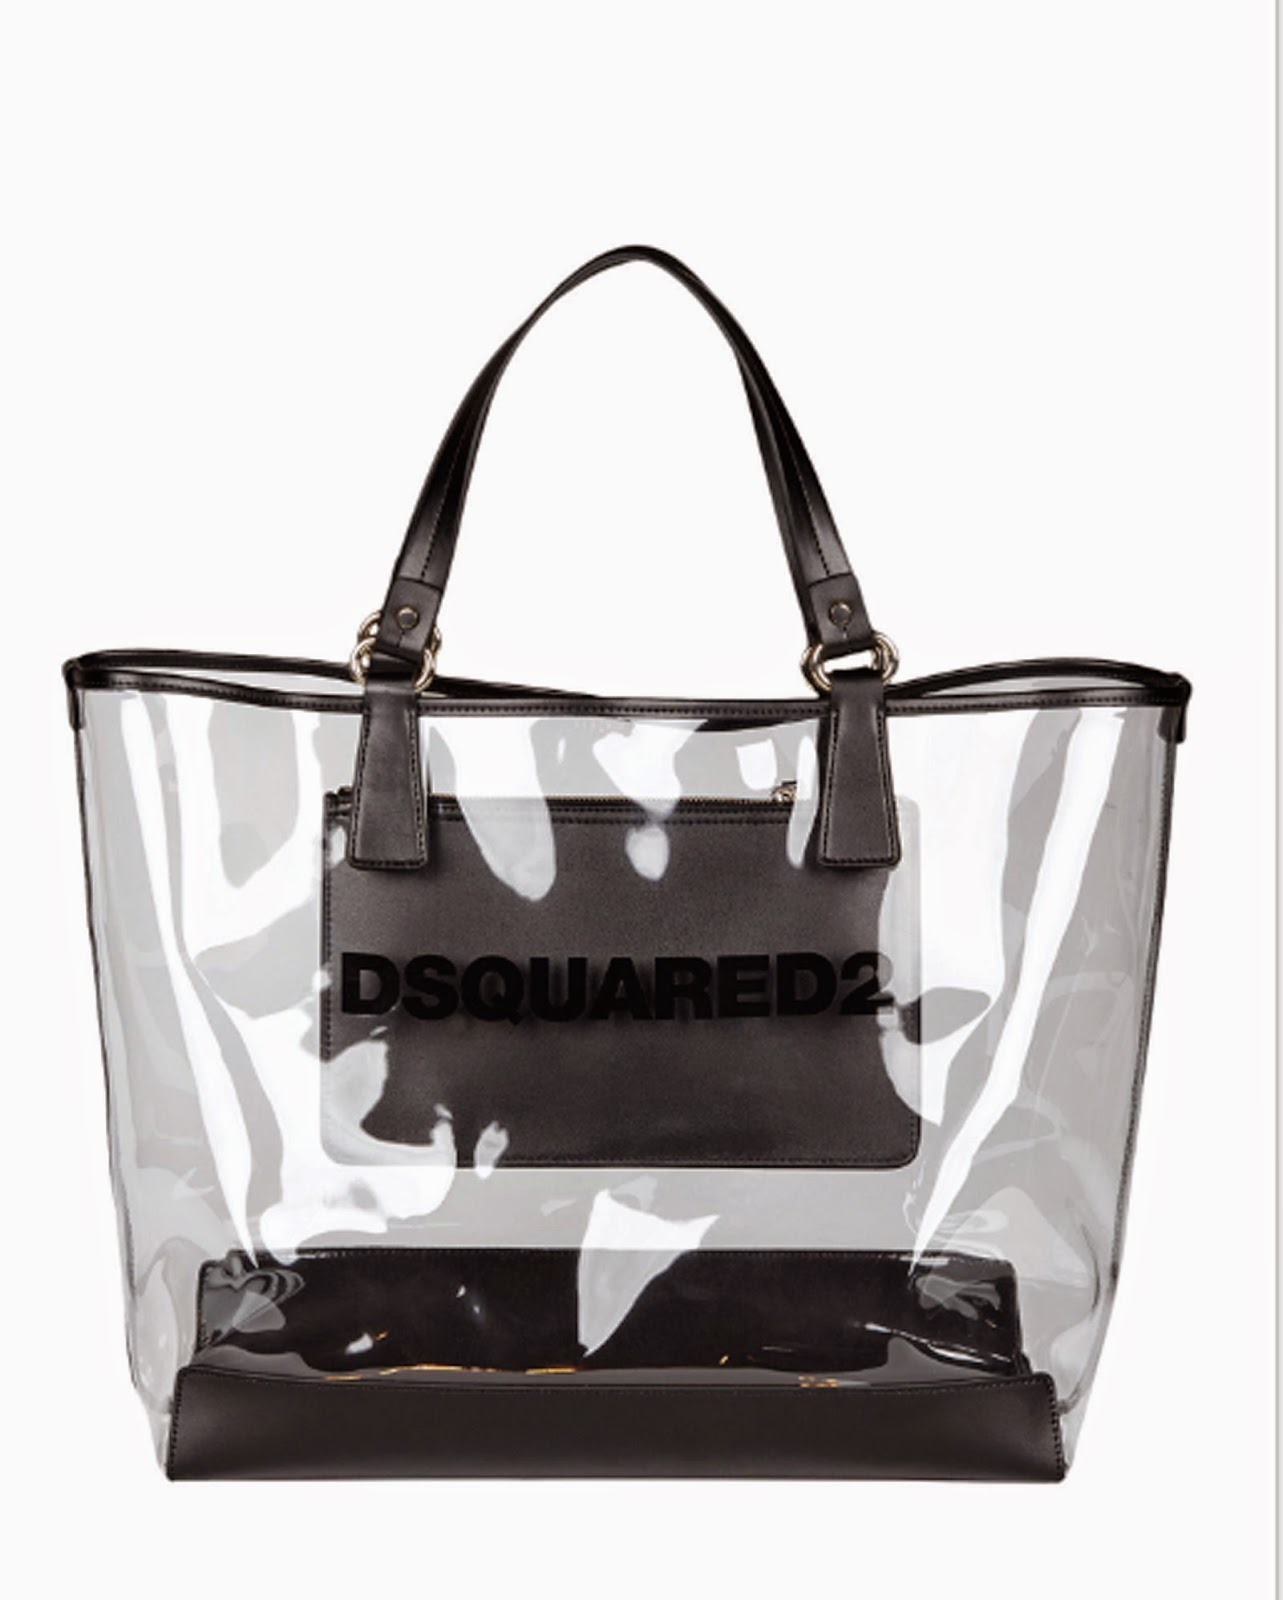 ROS.E.: Dsquared Shopping Bags Spring/Summer 2015 Collection - R ...